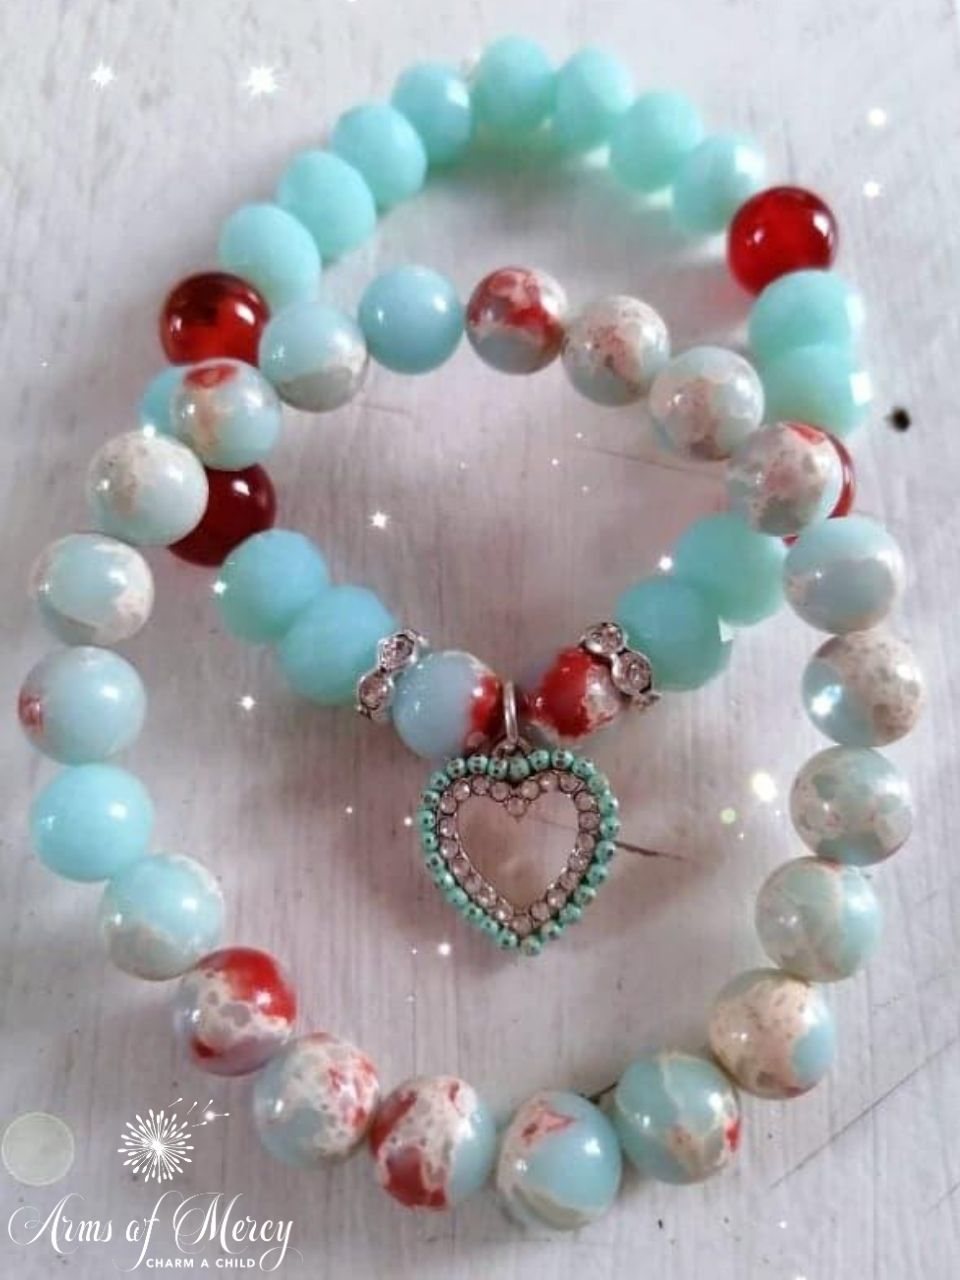 Turquoise Crystal and Pagodite Beads Bracelet Set © Arms of Mercy NPC